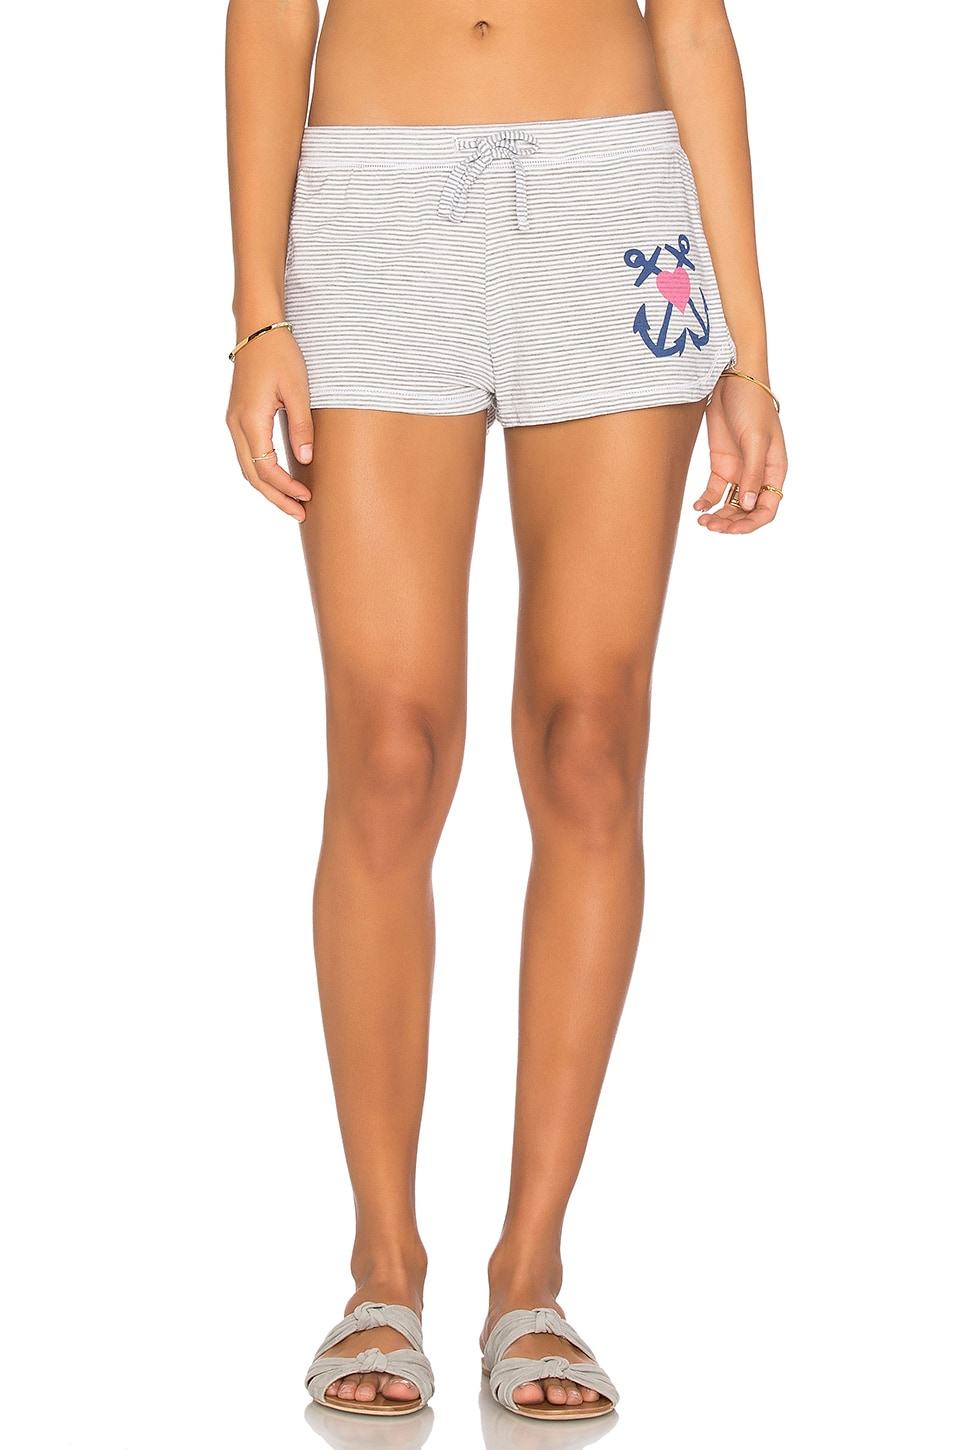 Junk Food Anchor Heart Short in White & Grey